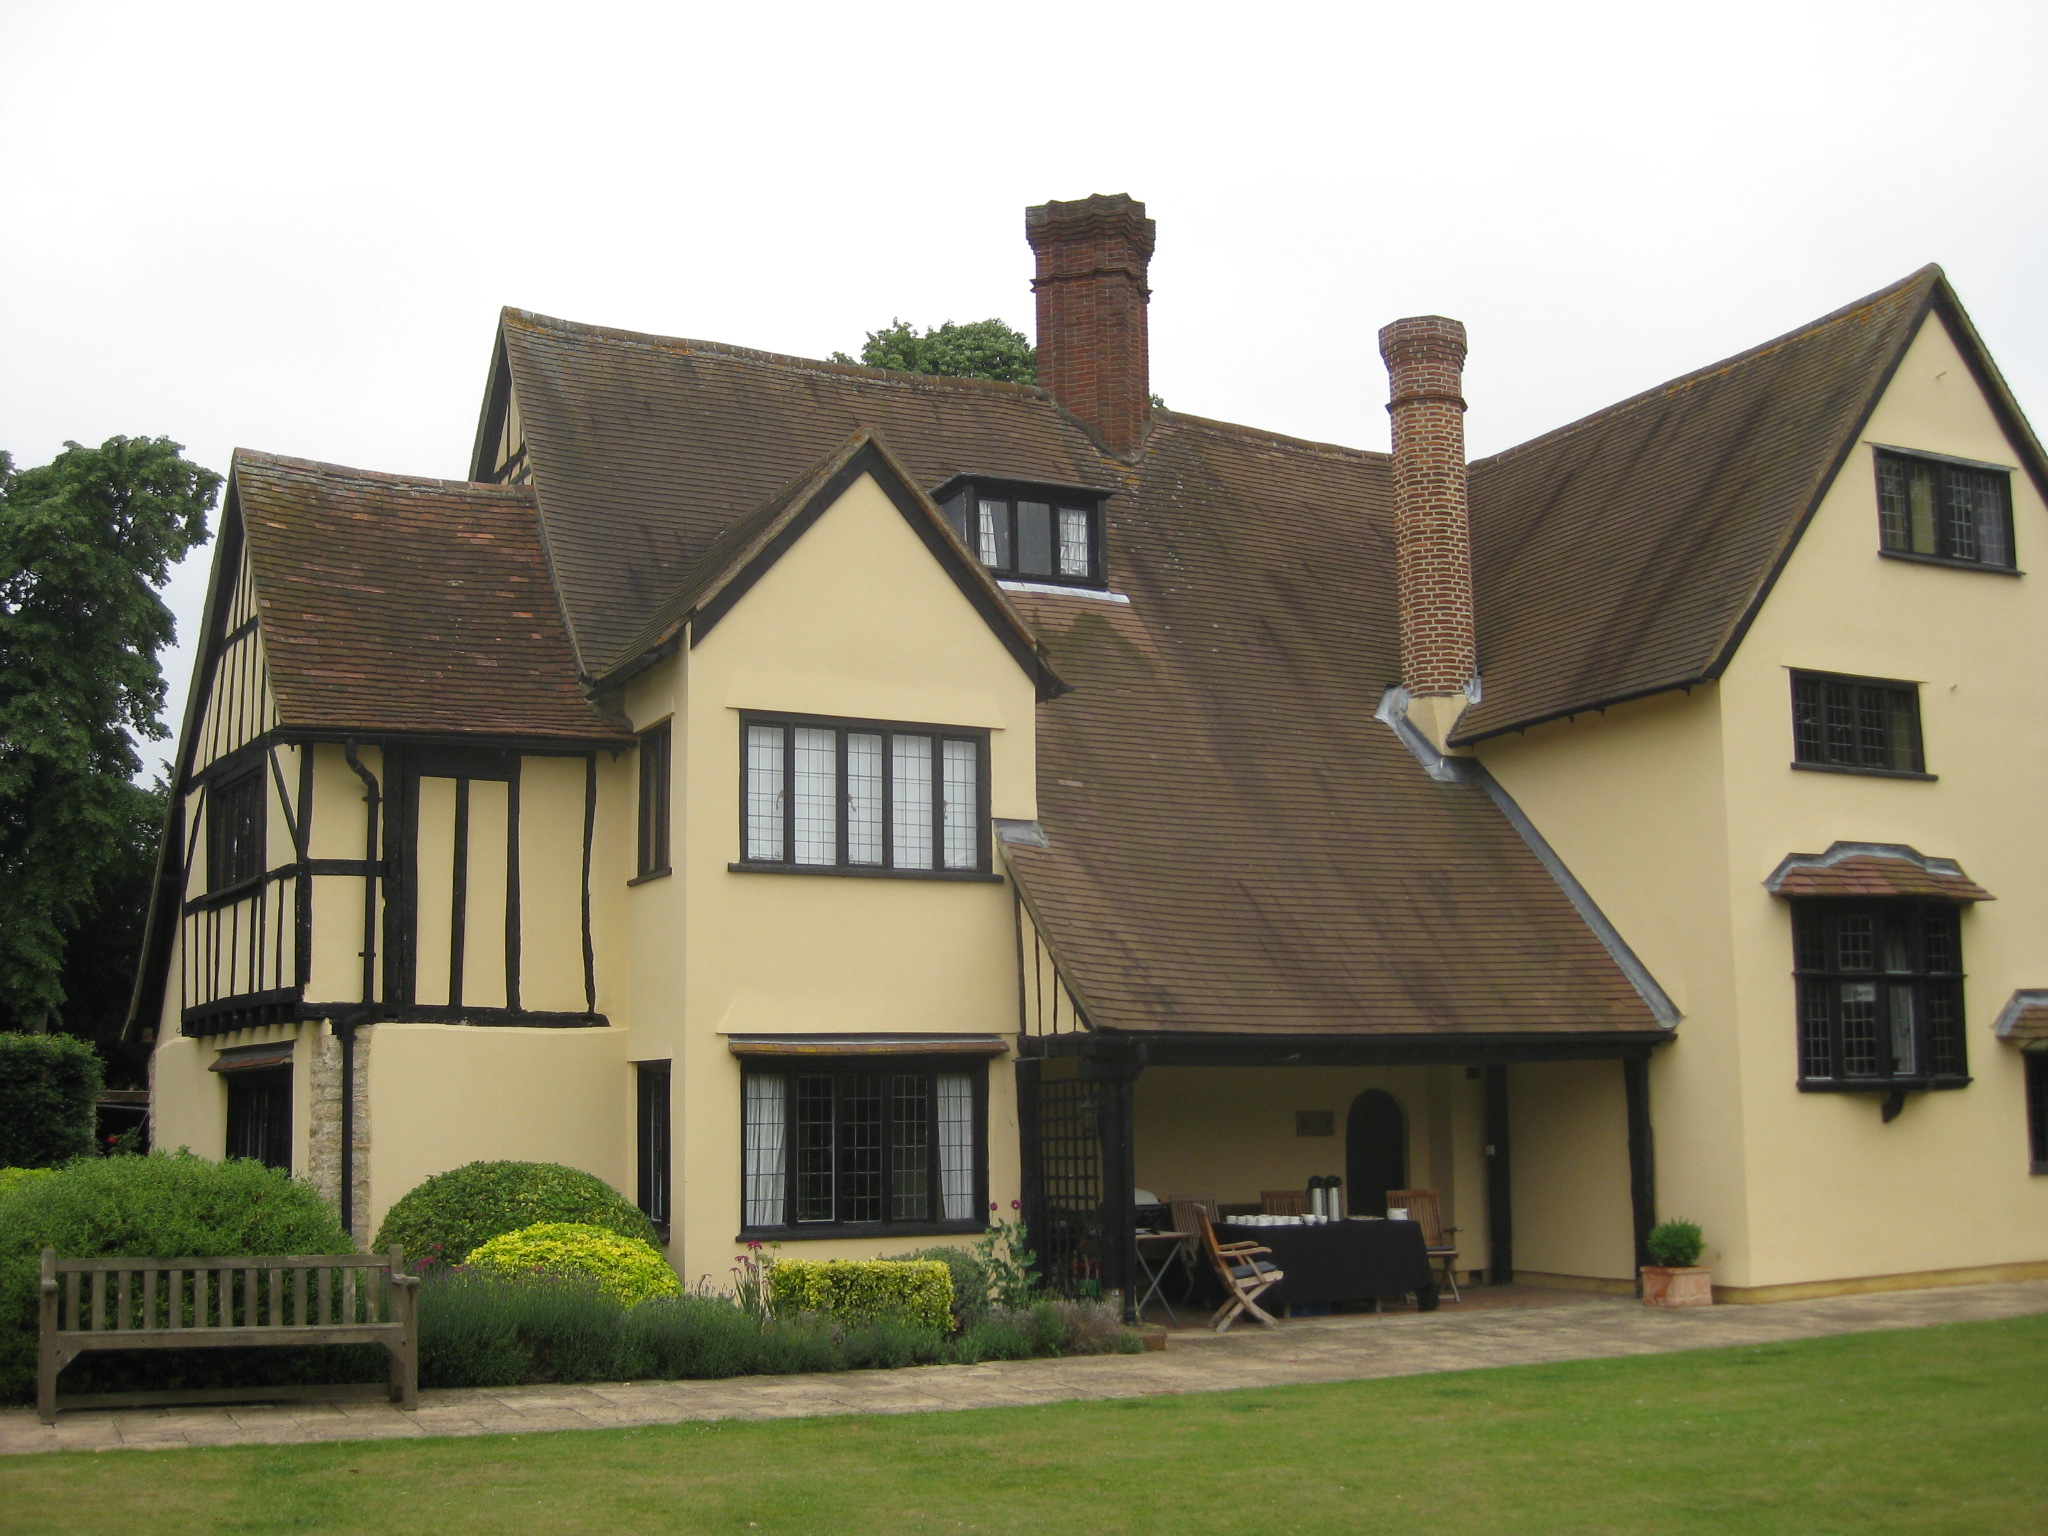 Lacies Court from the southwest in 2011